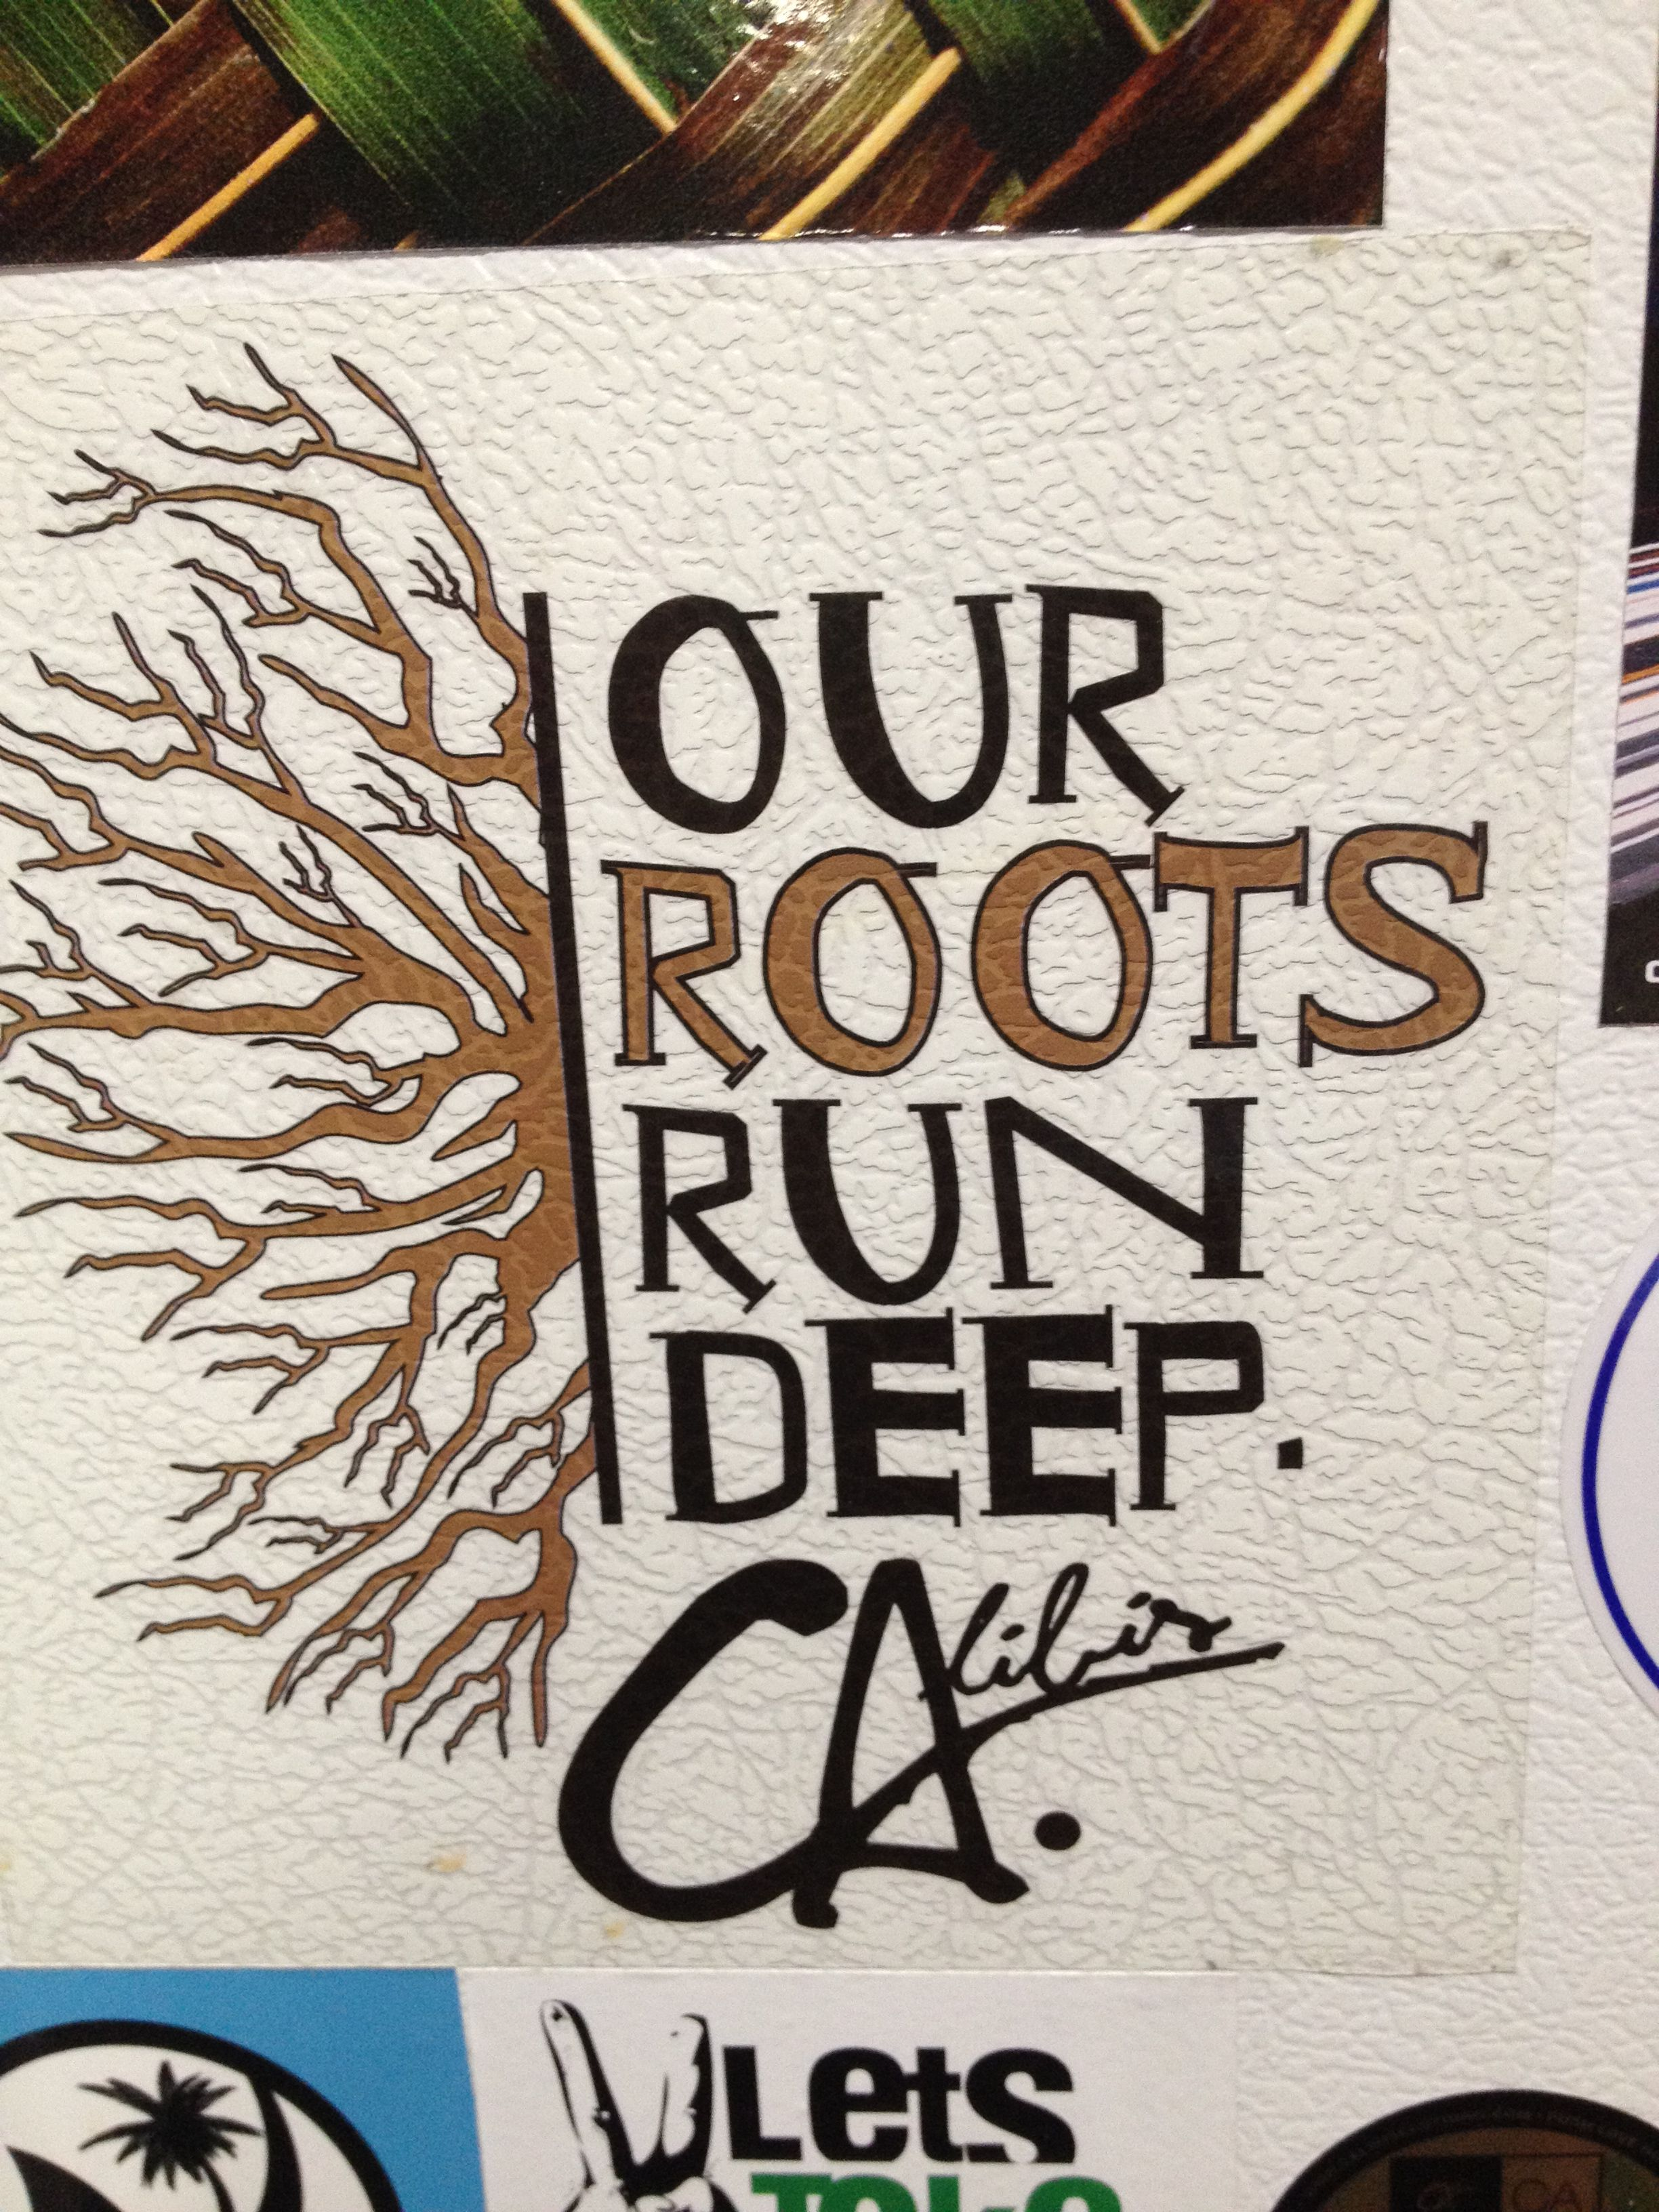 Our Roots Run Deep And True Clip Art Ideas For A Bulletin Board Black And White